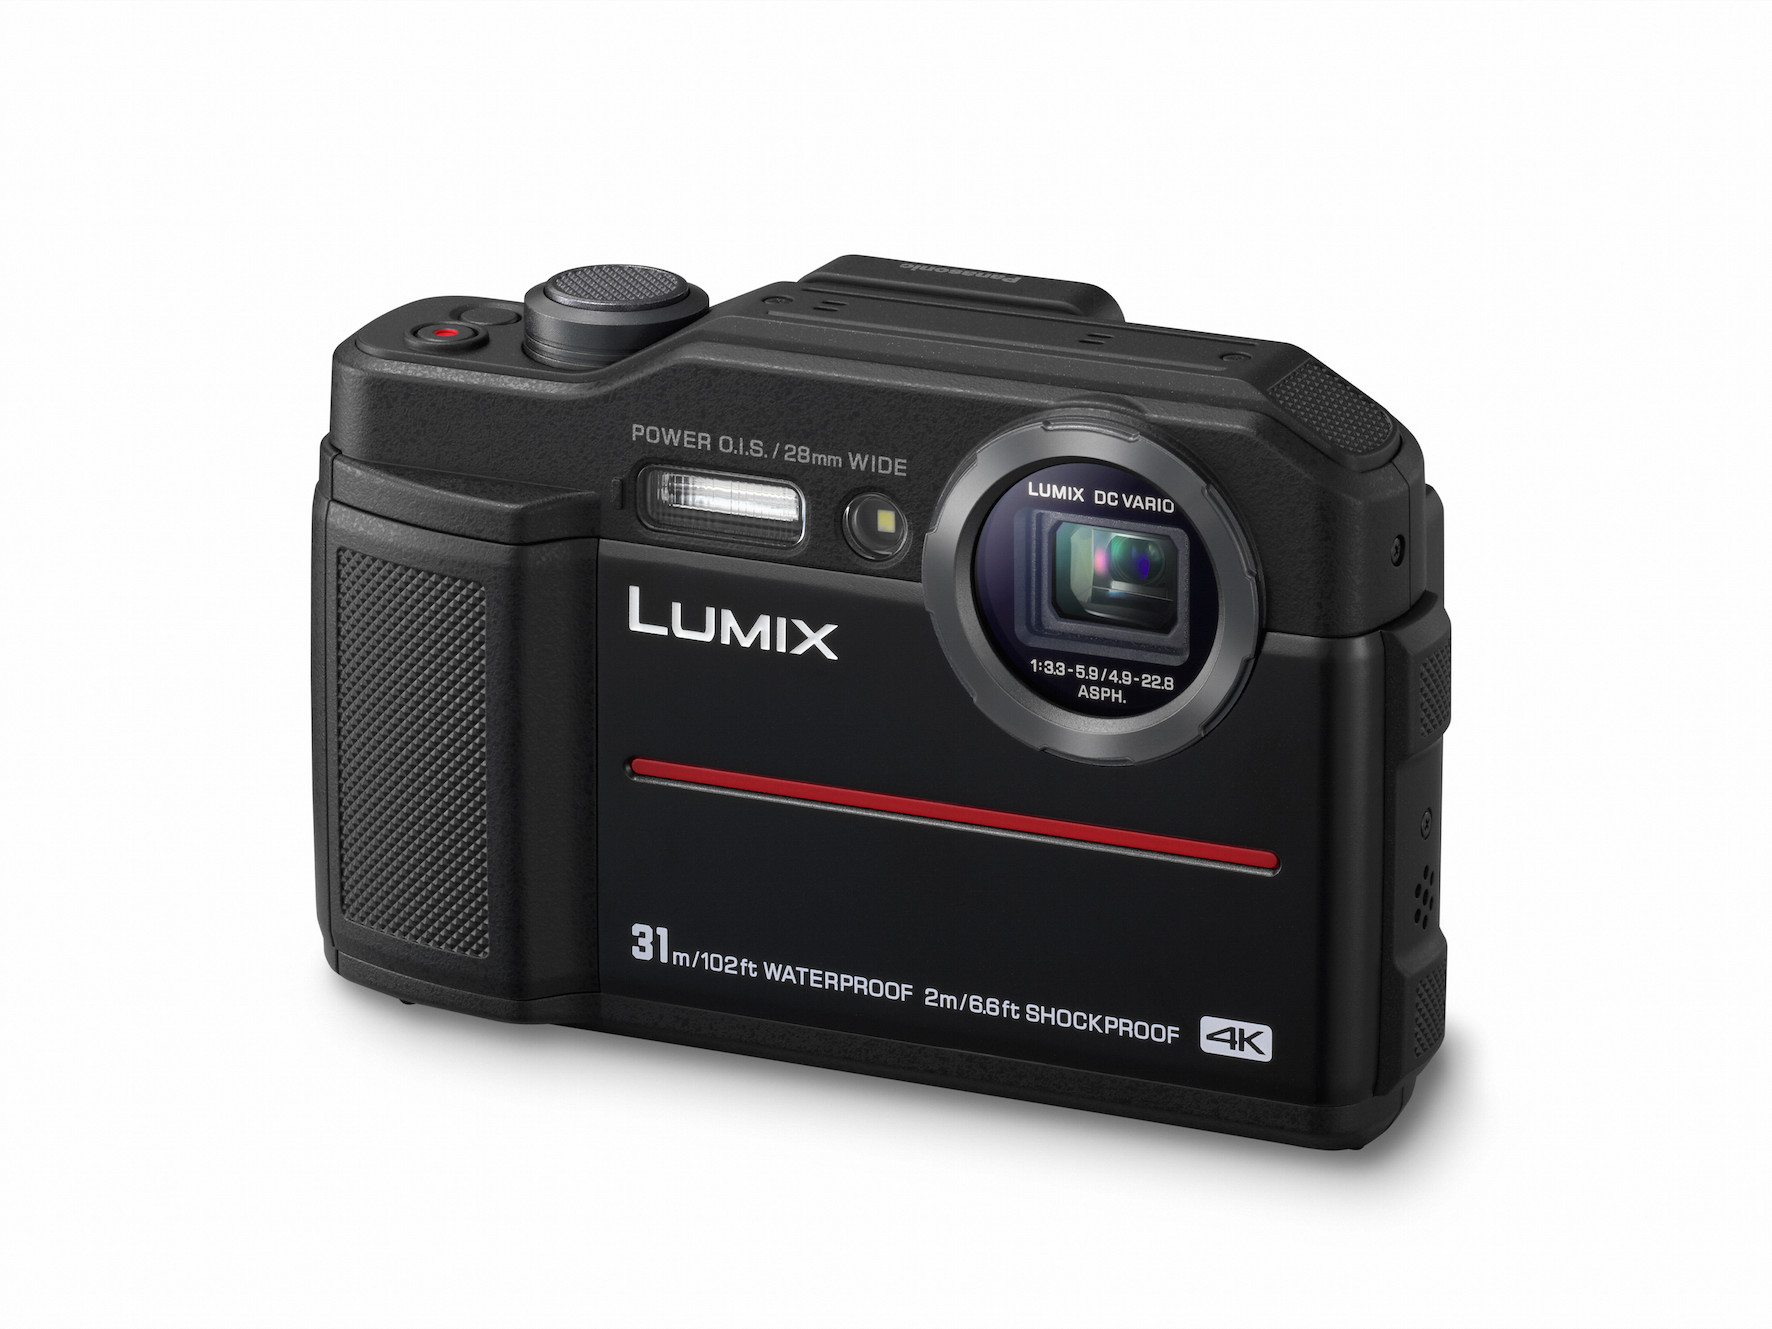 Panasonic LUMIX FT7: 4K Tough camera with 31 m diving depth and integrated viewfinder